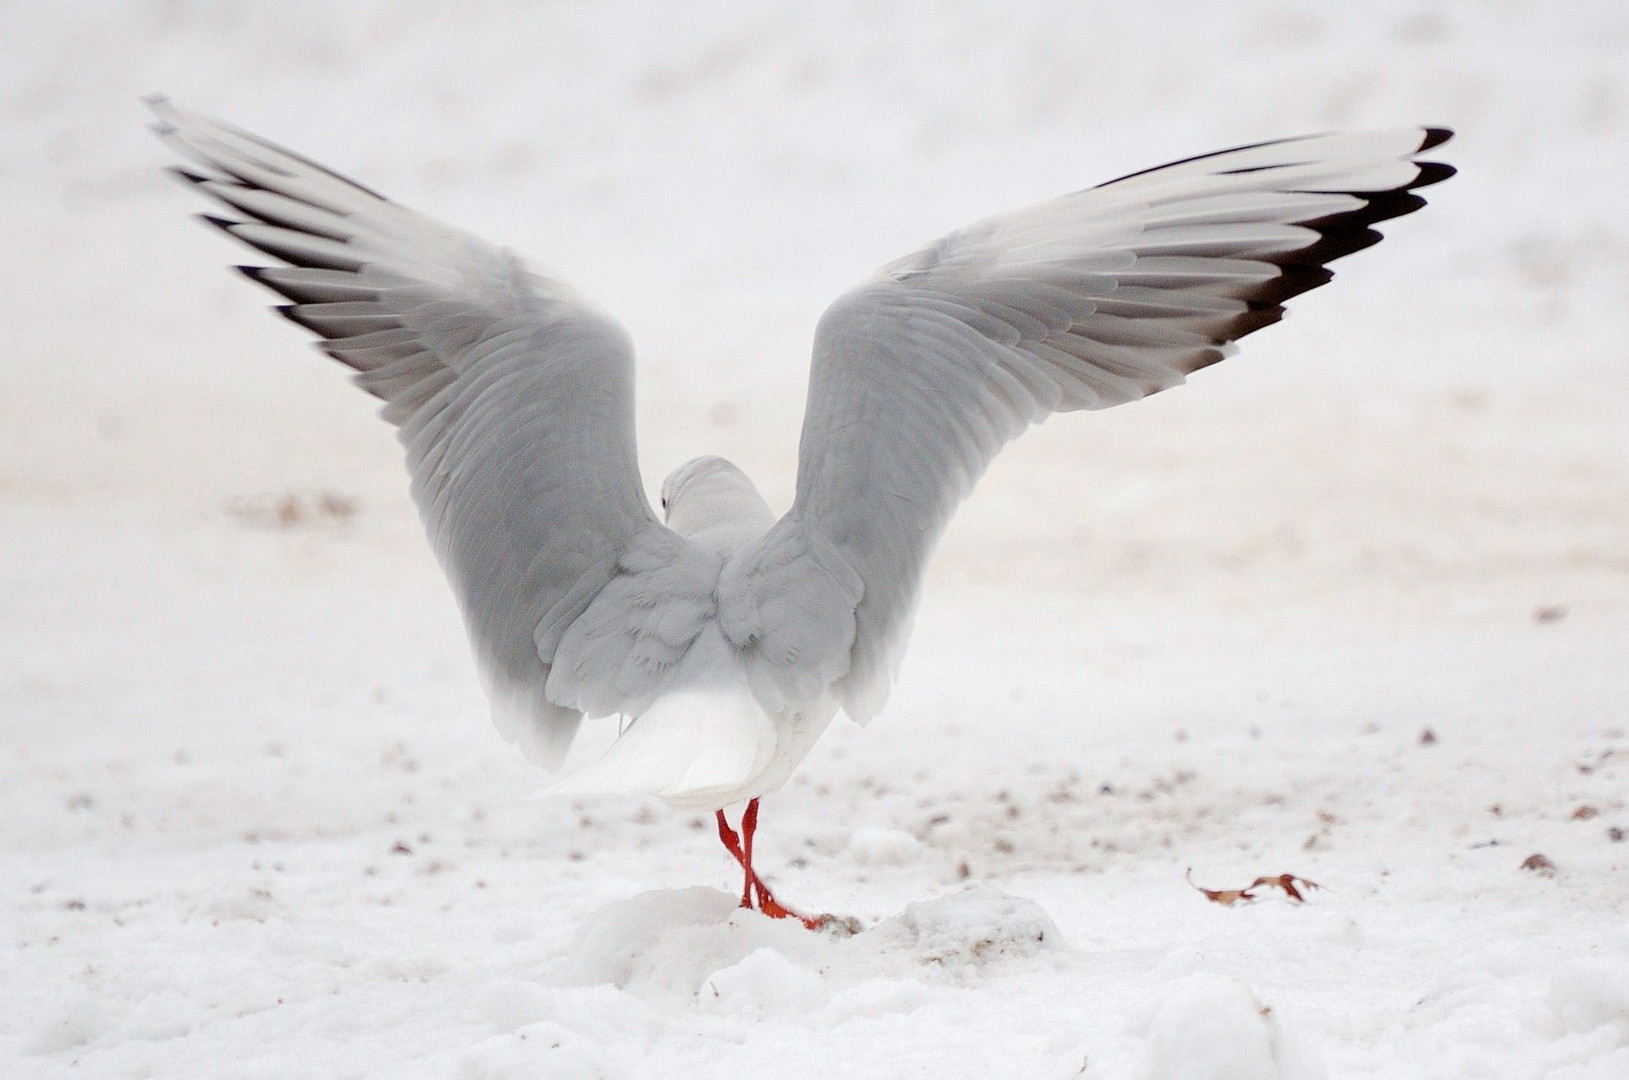 Dancing in the snow.